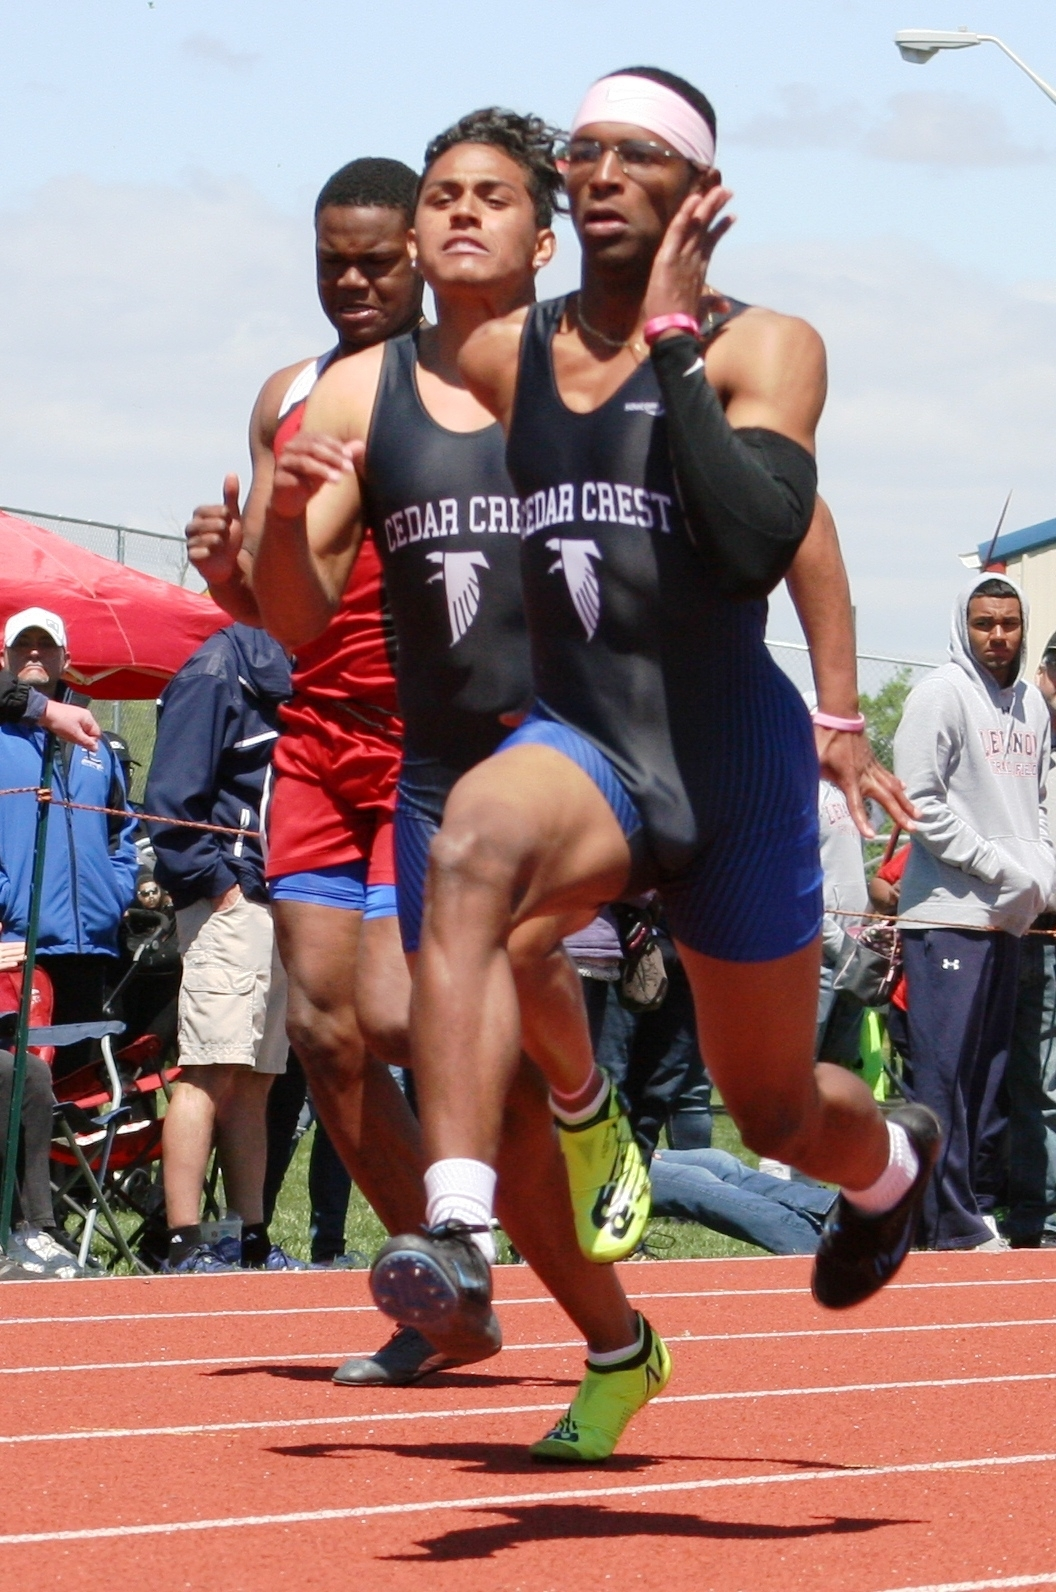 Lebanon County Track and Field Championships 087